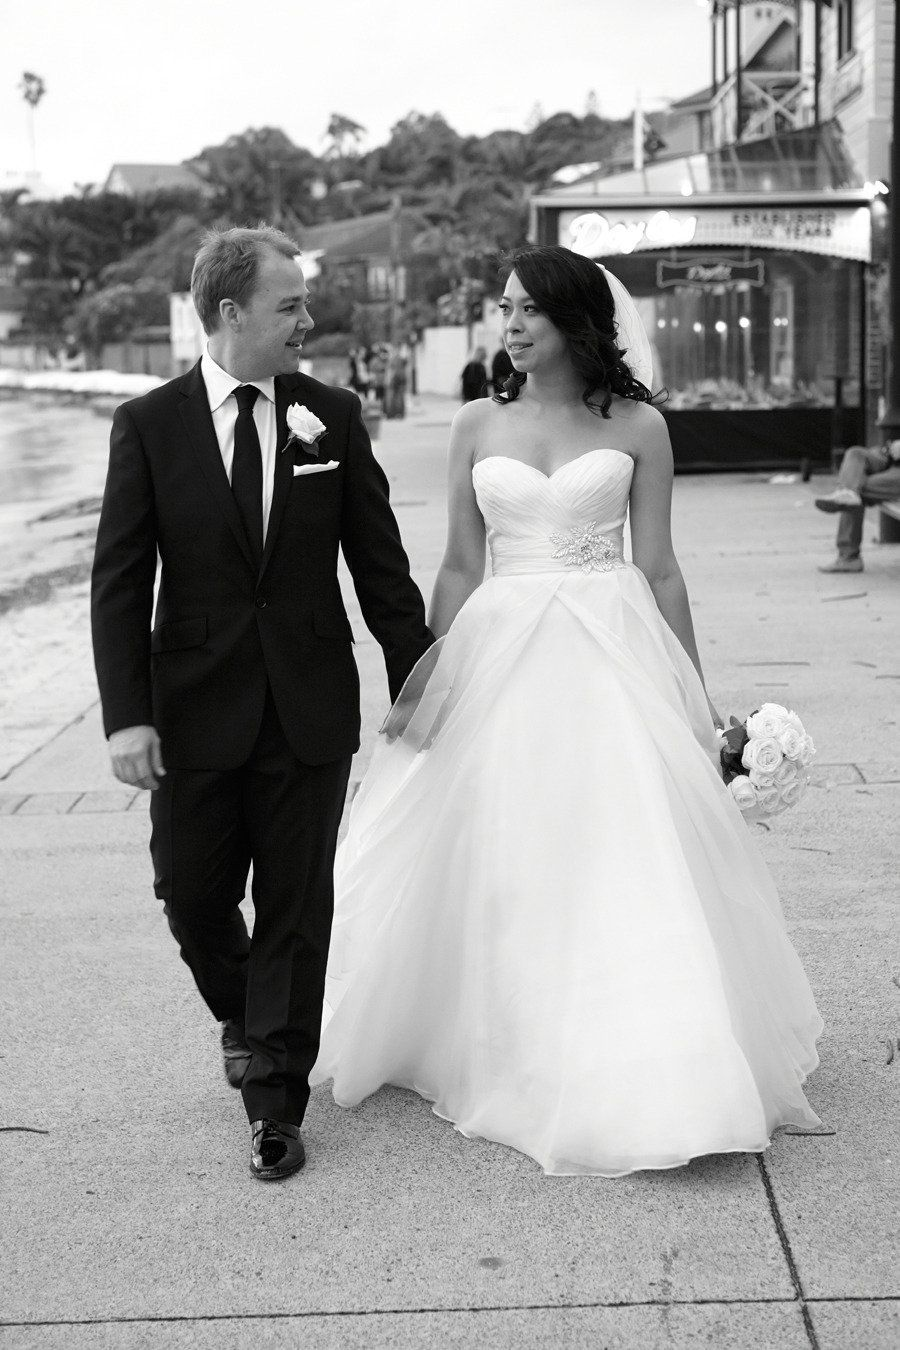 Real Bride in Watters Wedding Gown Anouk Style 2071B  Photography: Milk and Honey - milkandhoney.com.au  Read More: http://stylemepretty.com/2013/08/20/sydney-wedding-from-milk-and-honey-photography/